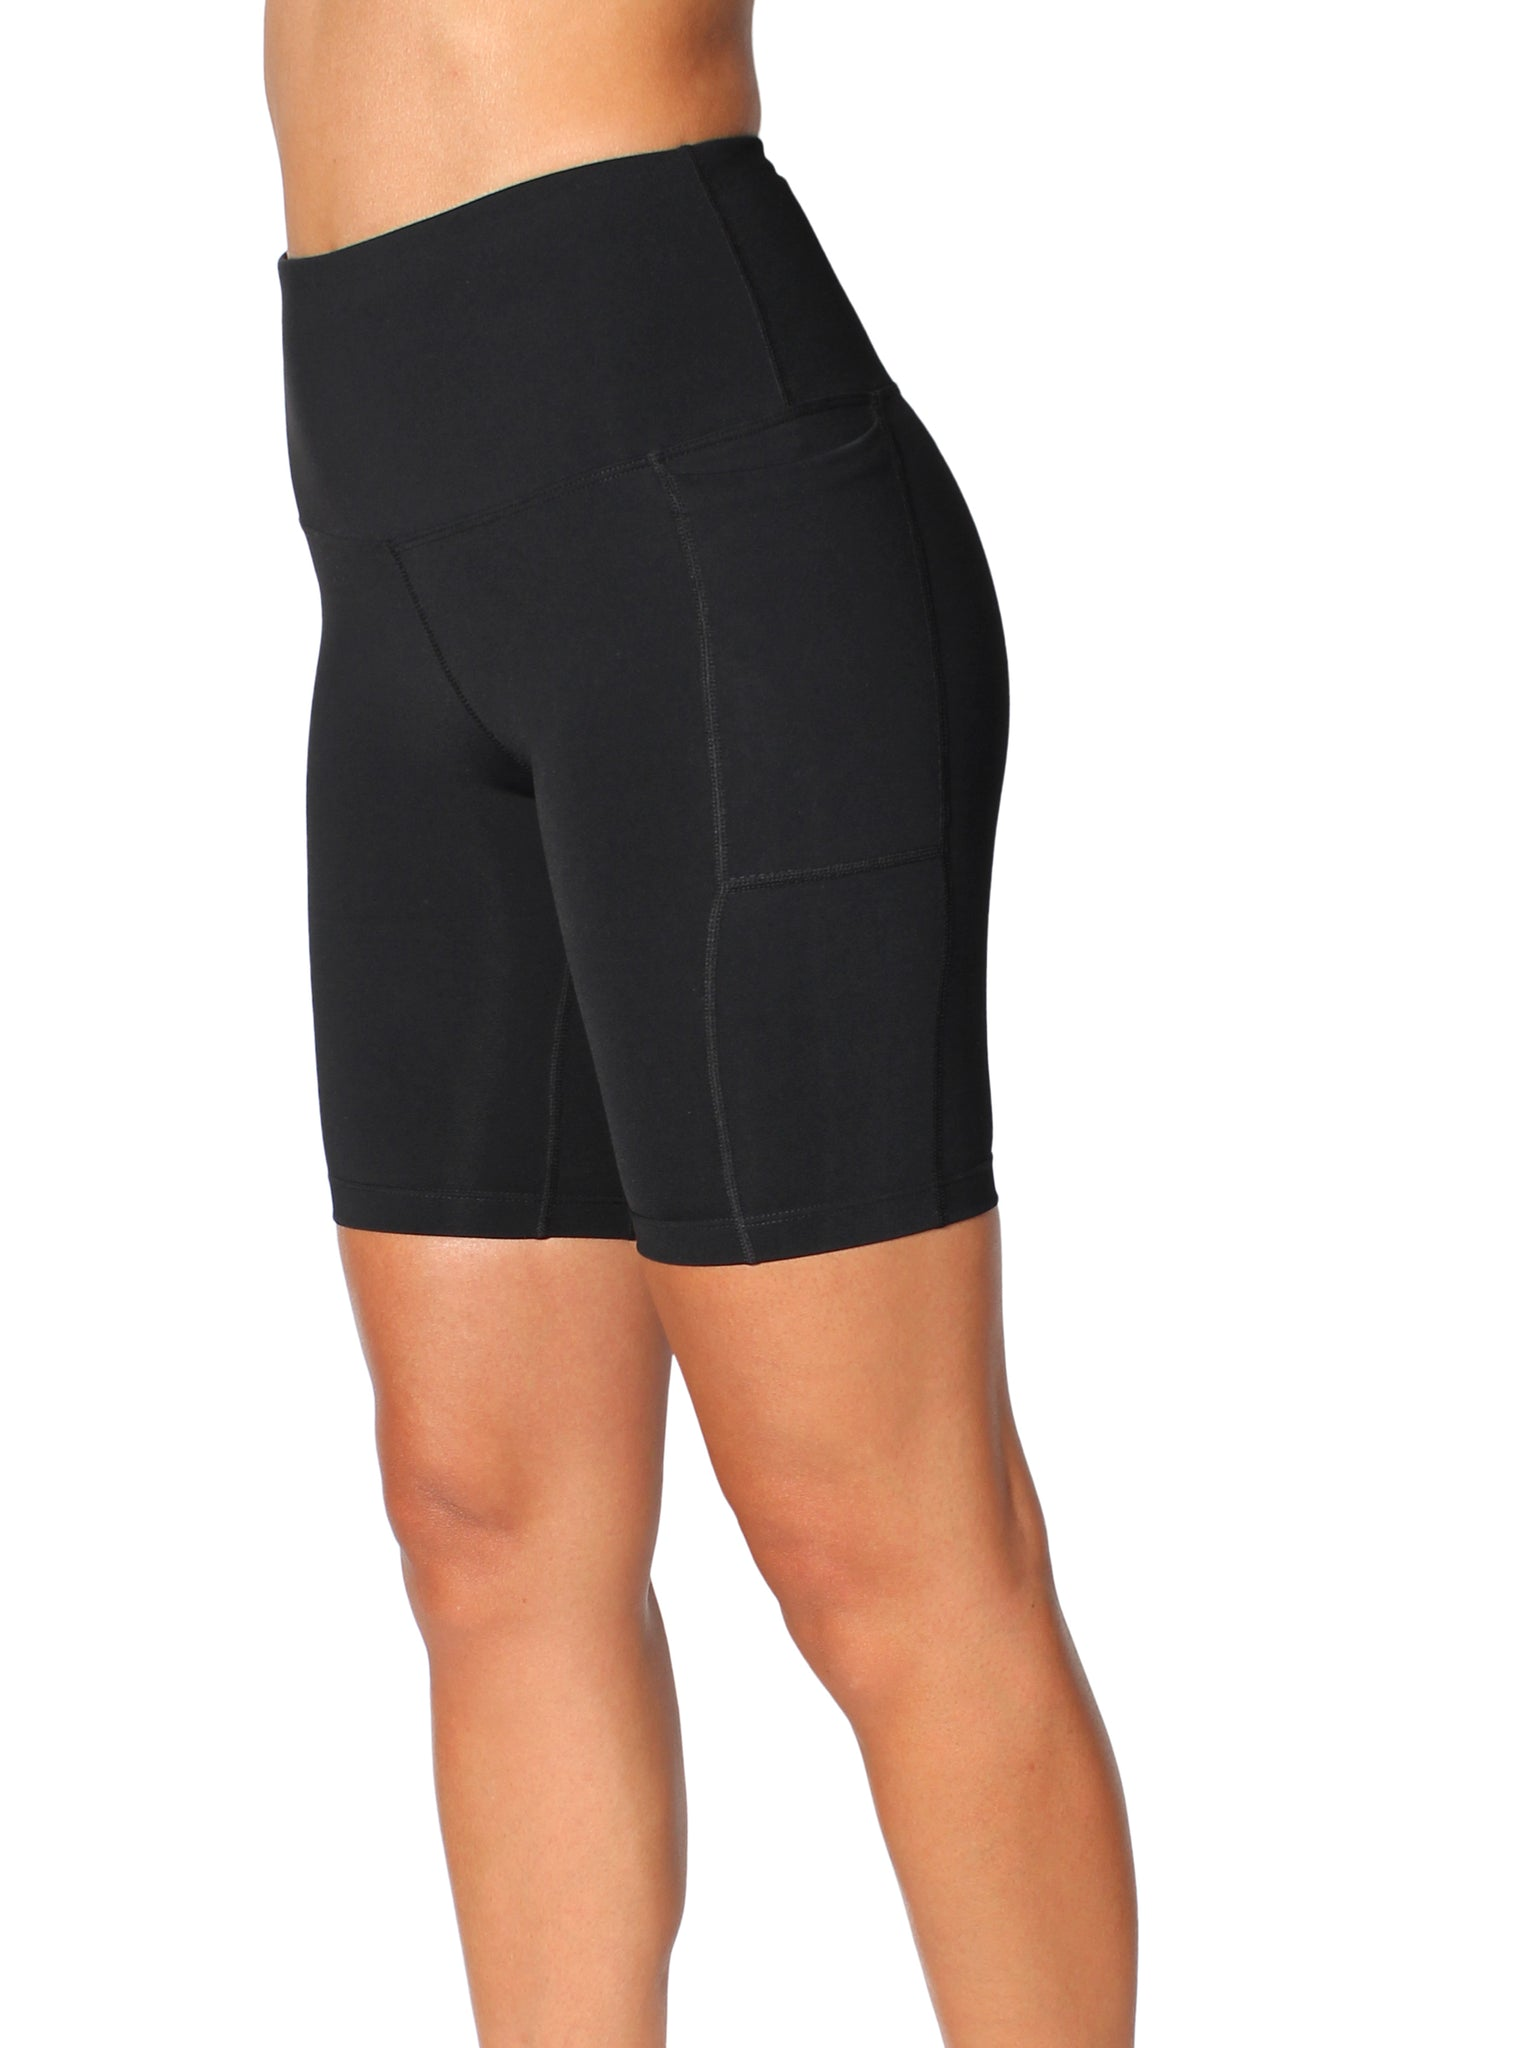 SUPPLEX BIKE SHORTS WITH SUPPORTIVE WAISTBAND